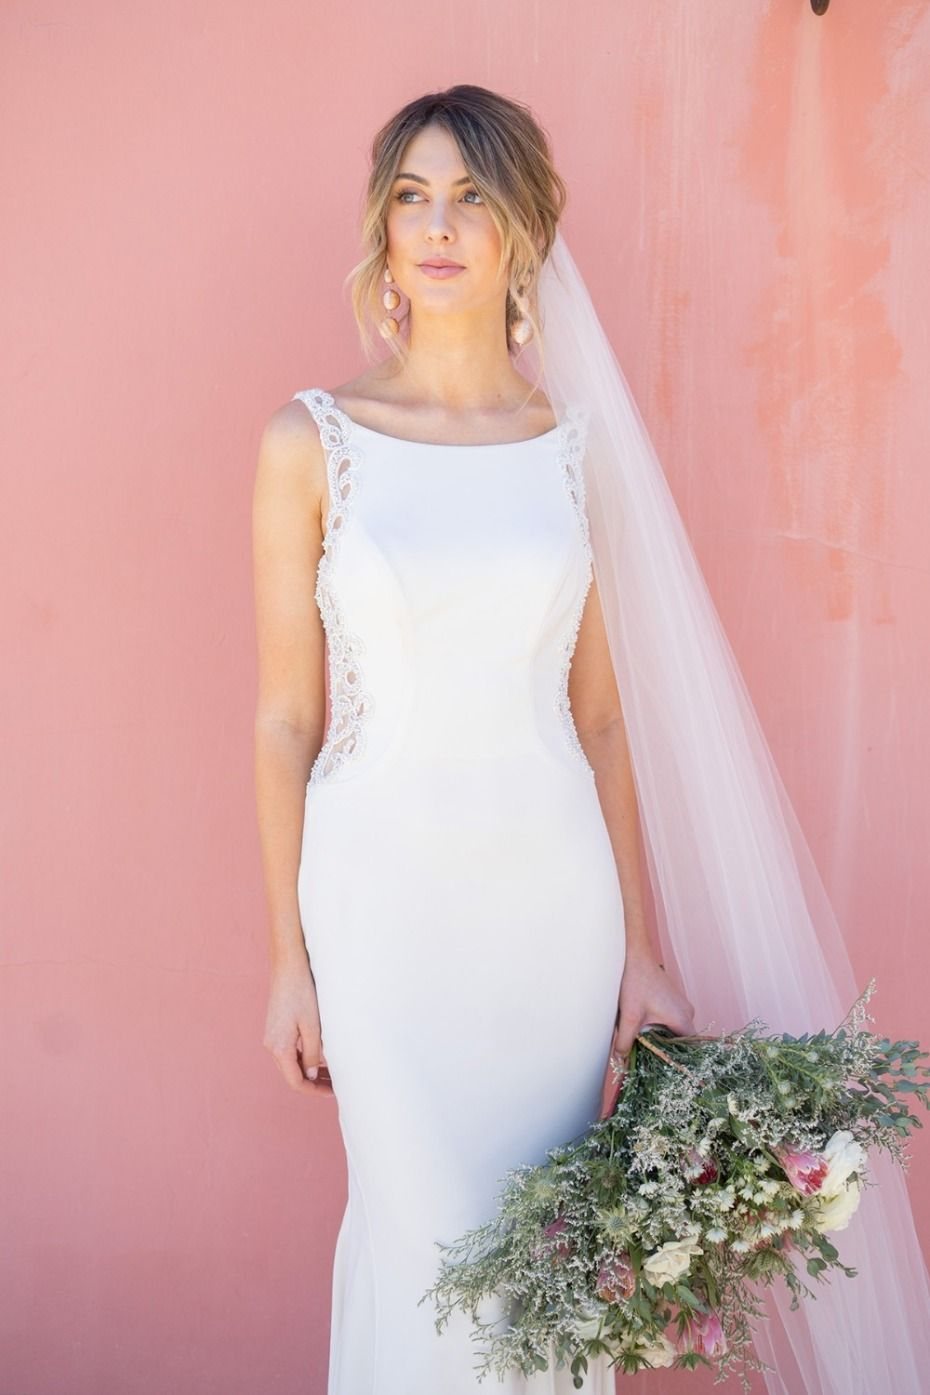 Traditional and timeless davidus bridal wins with both